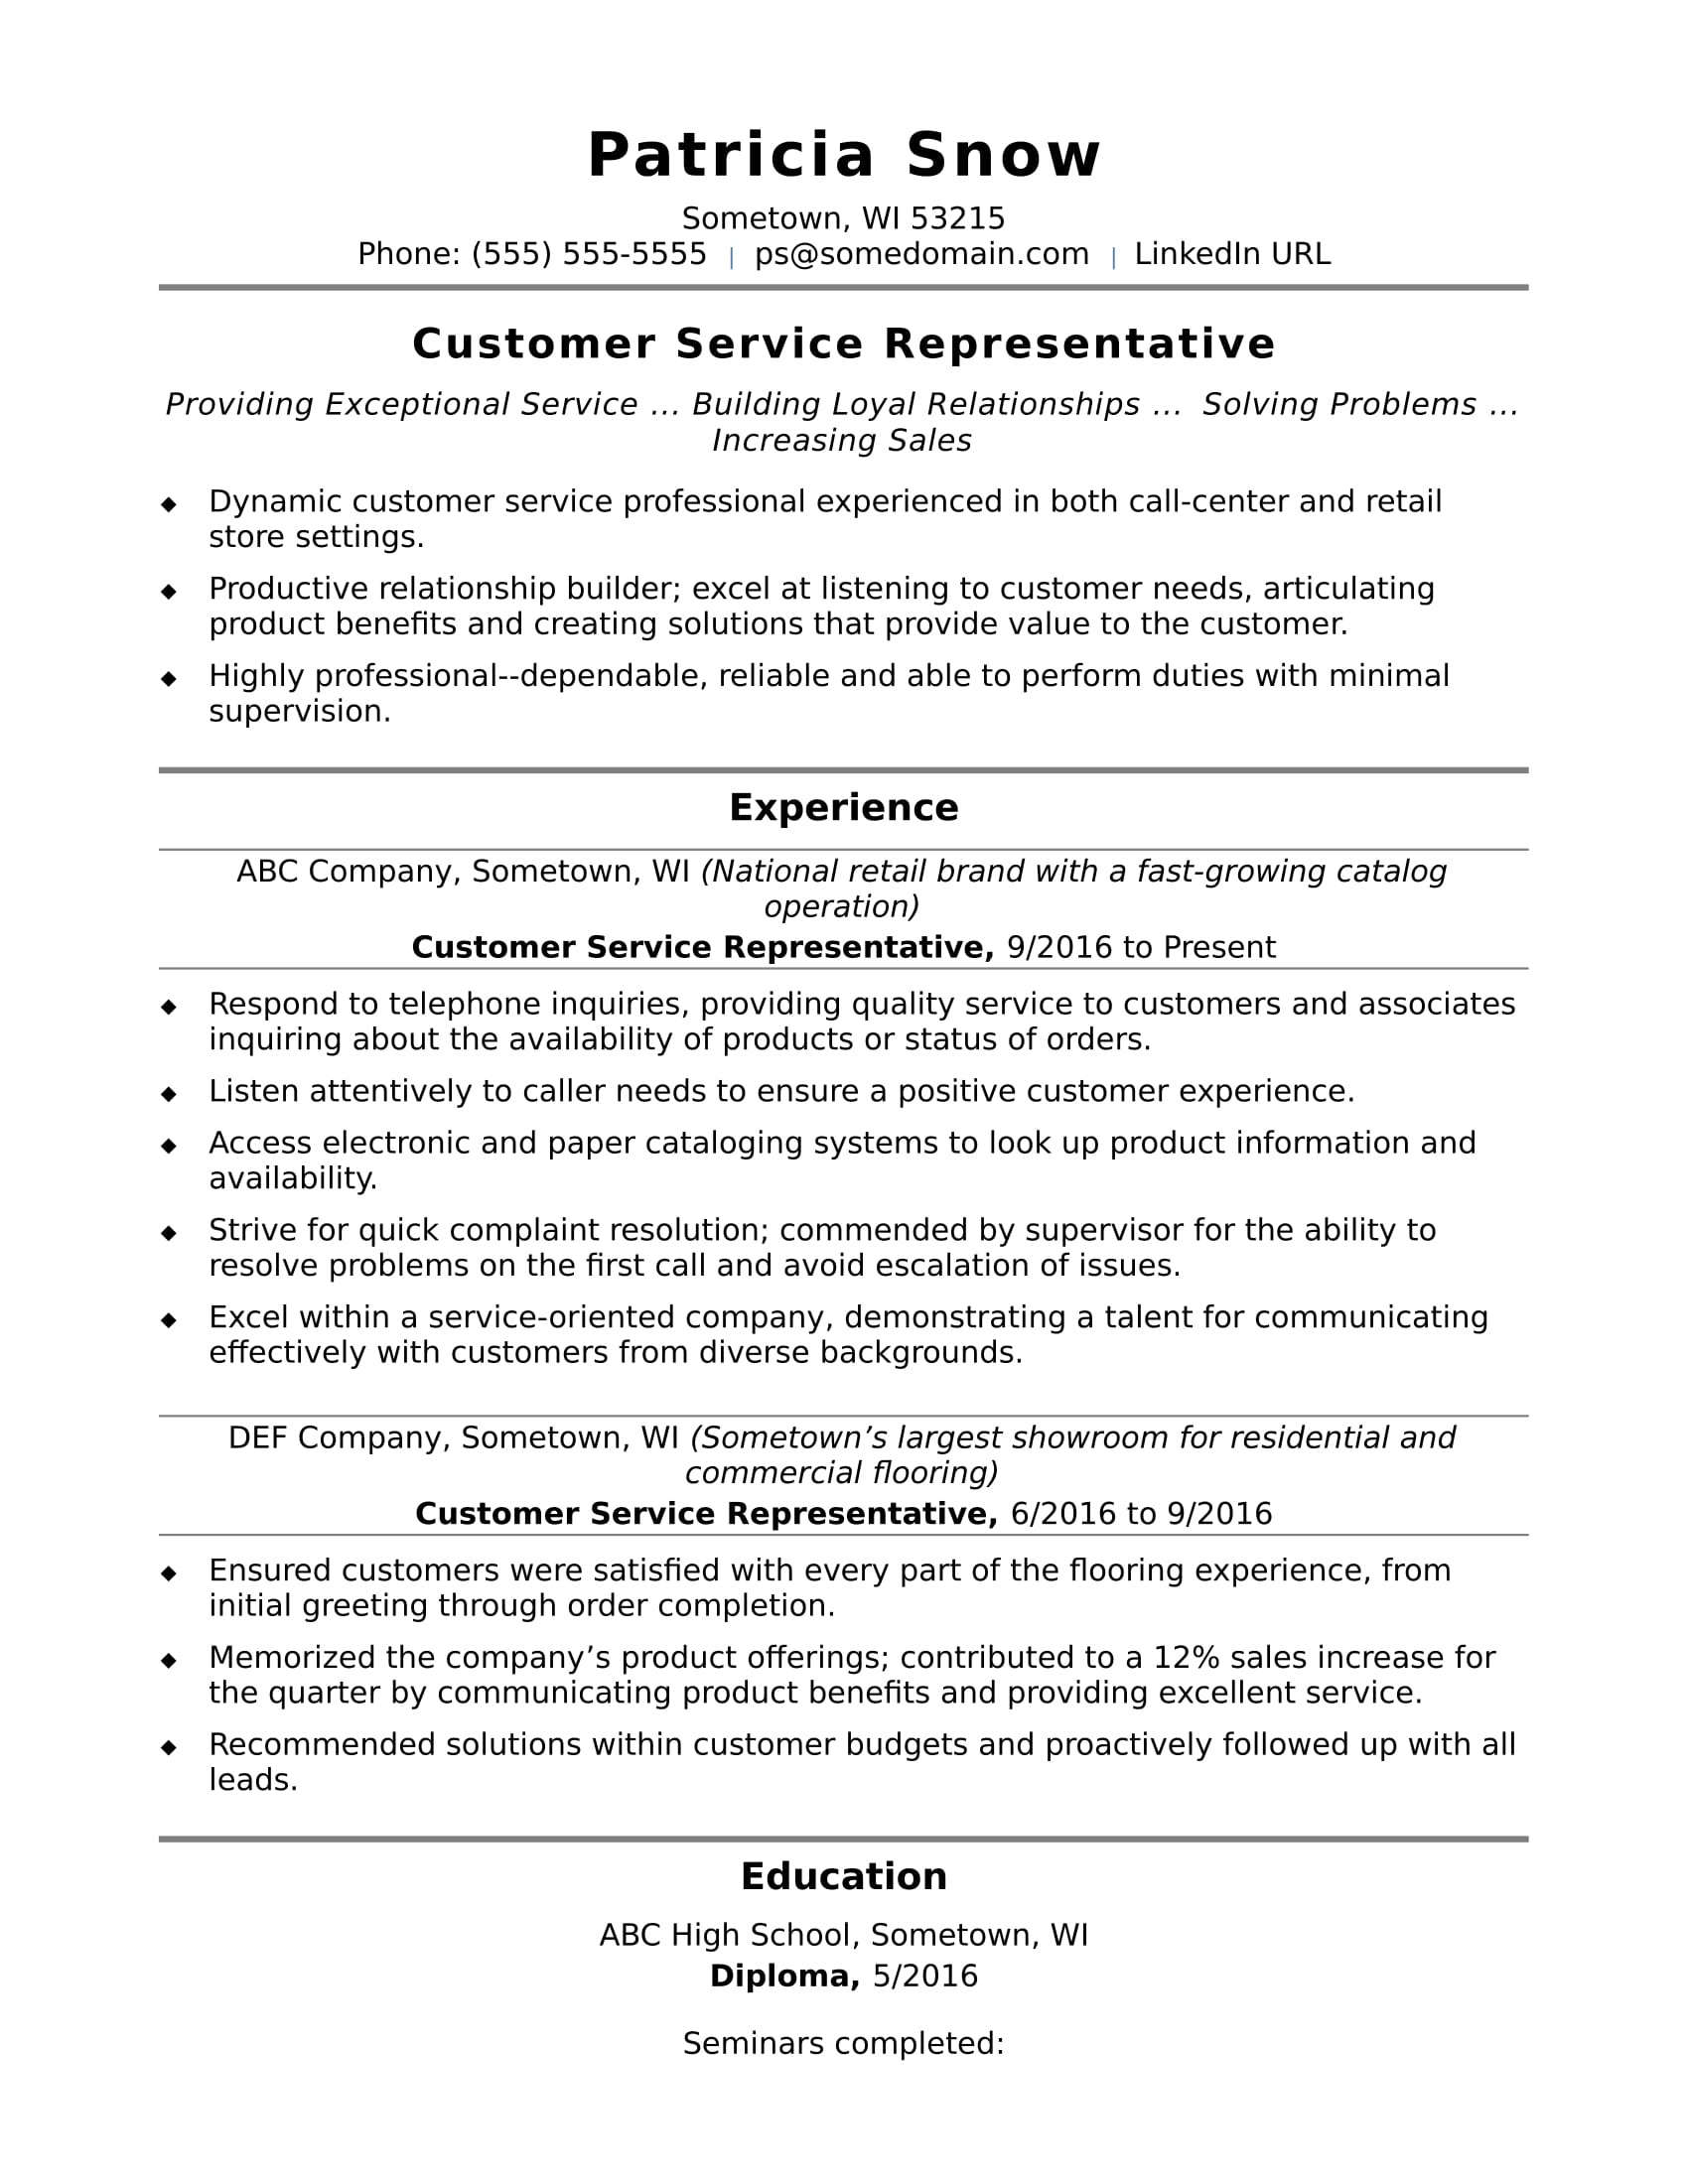 customer service representative resume sample - How To Write A Entry Level Resume